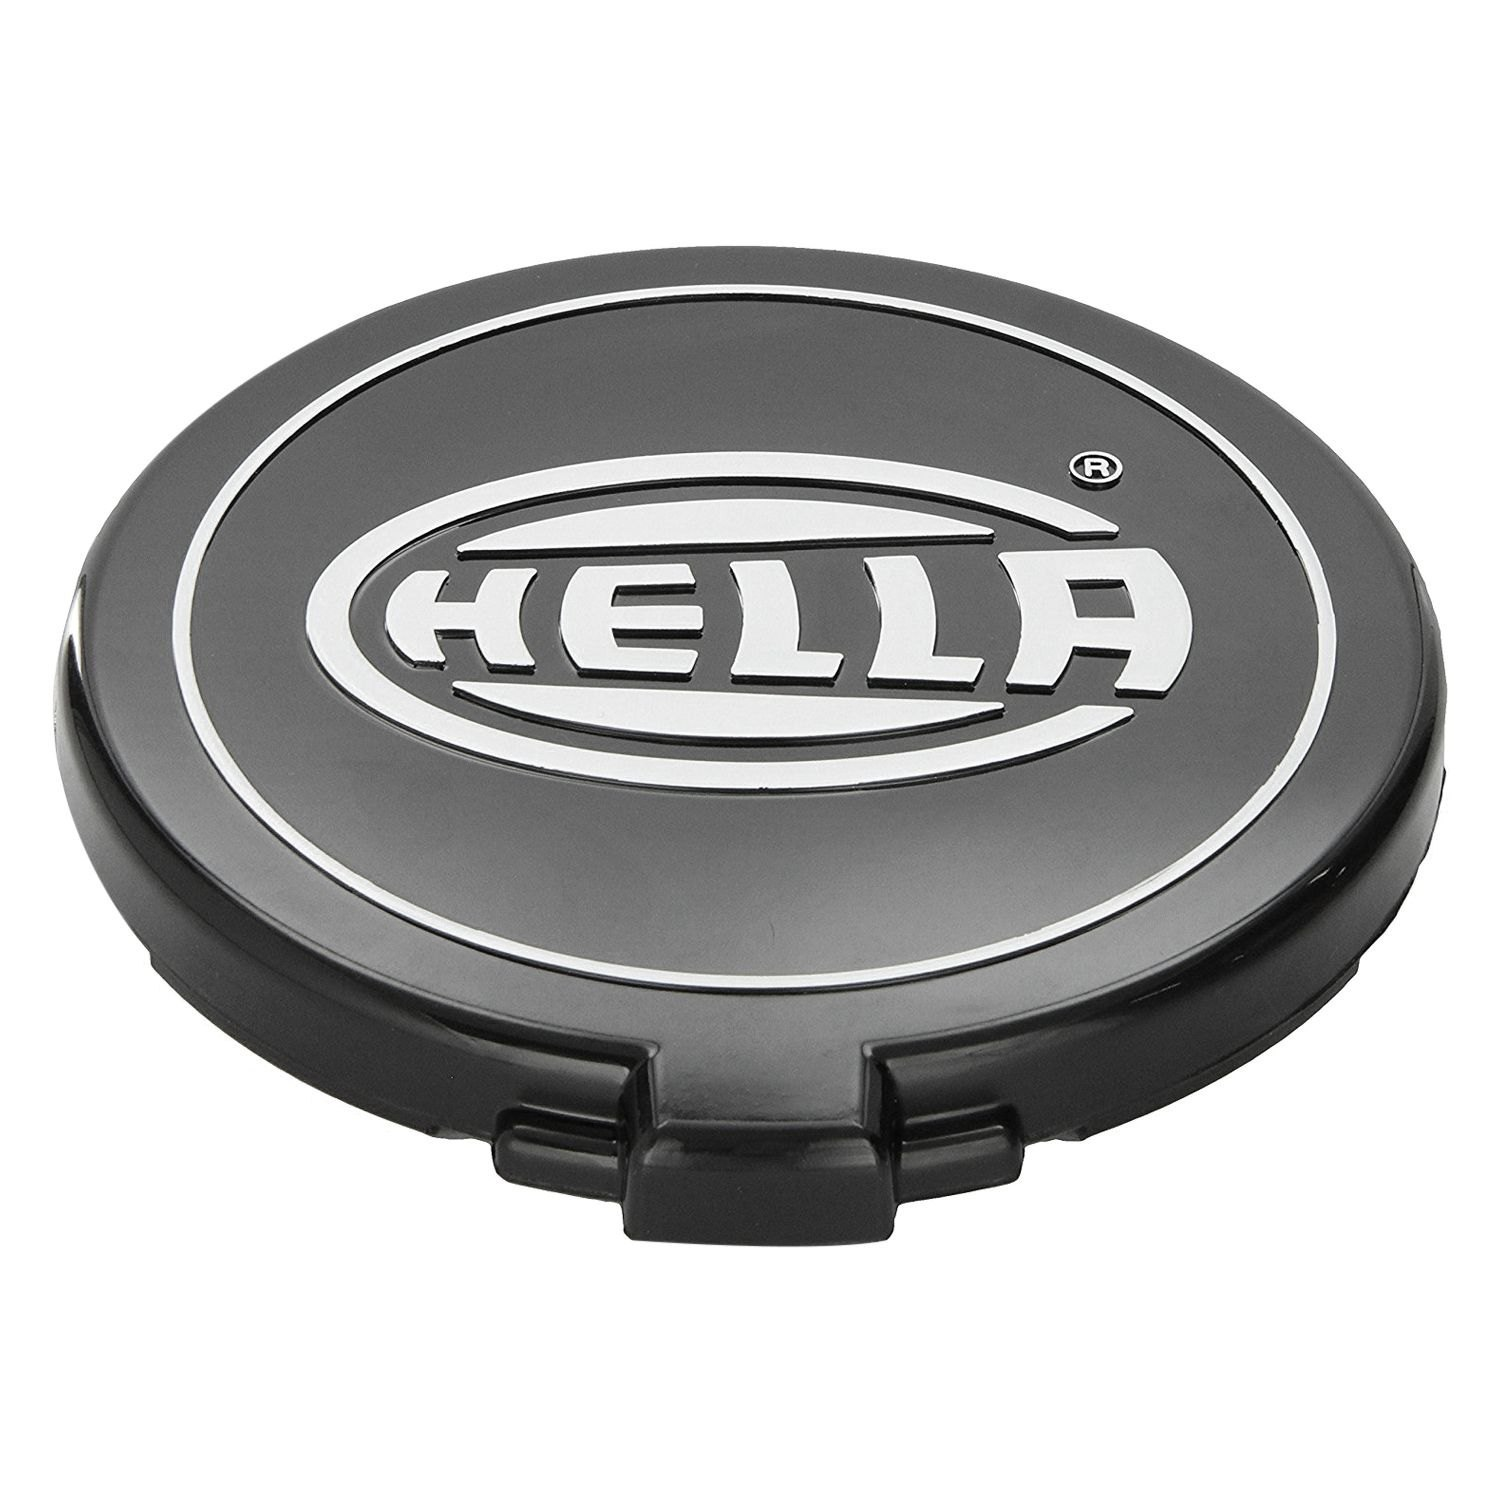 Plastic Light Covers >> Hella H73146011 6 4 Round Black Plastic Light Covers With White Logo For 500 Series